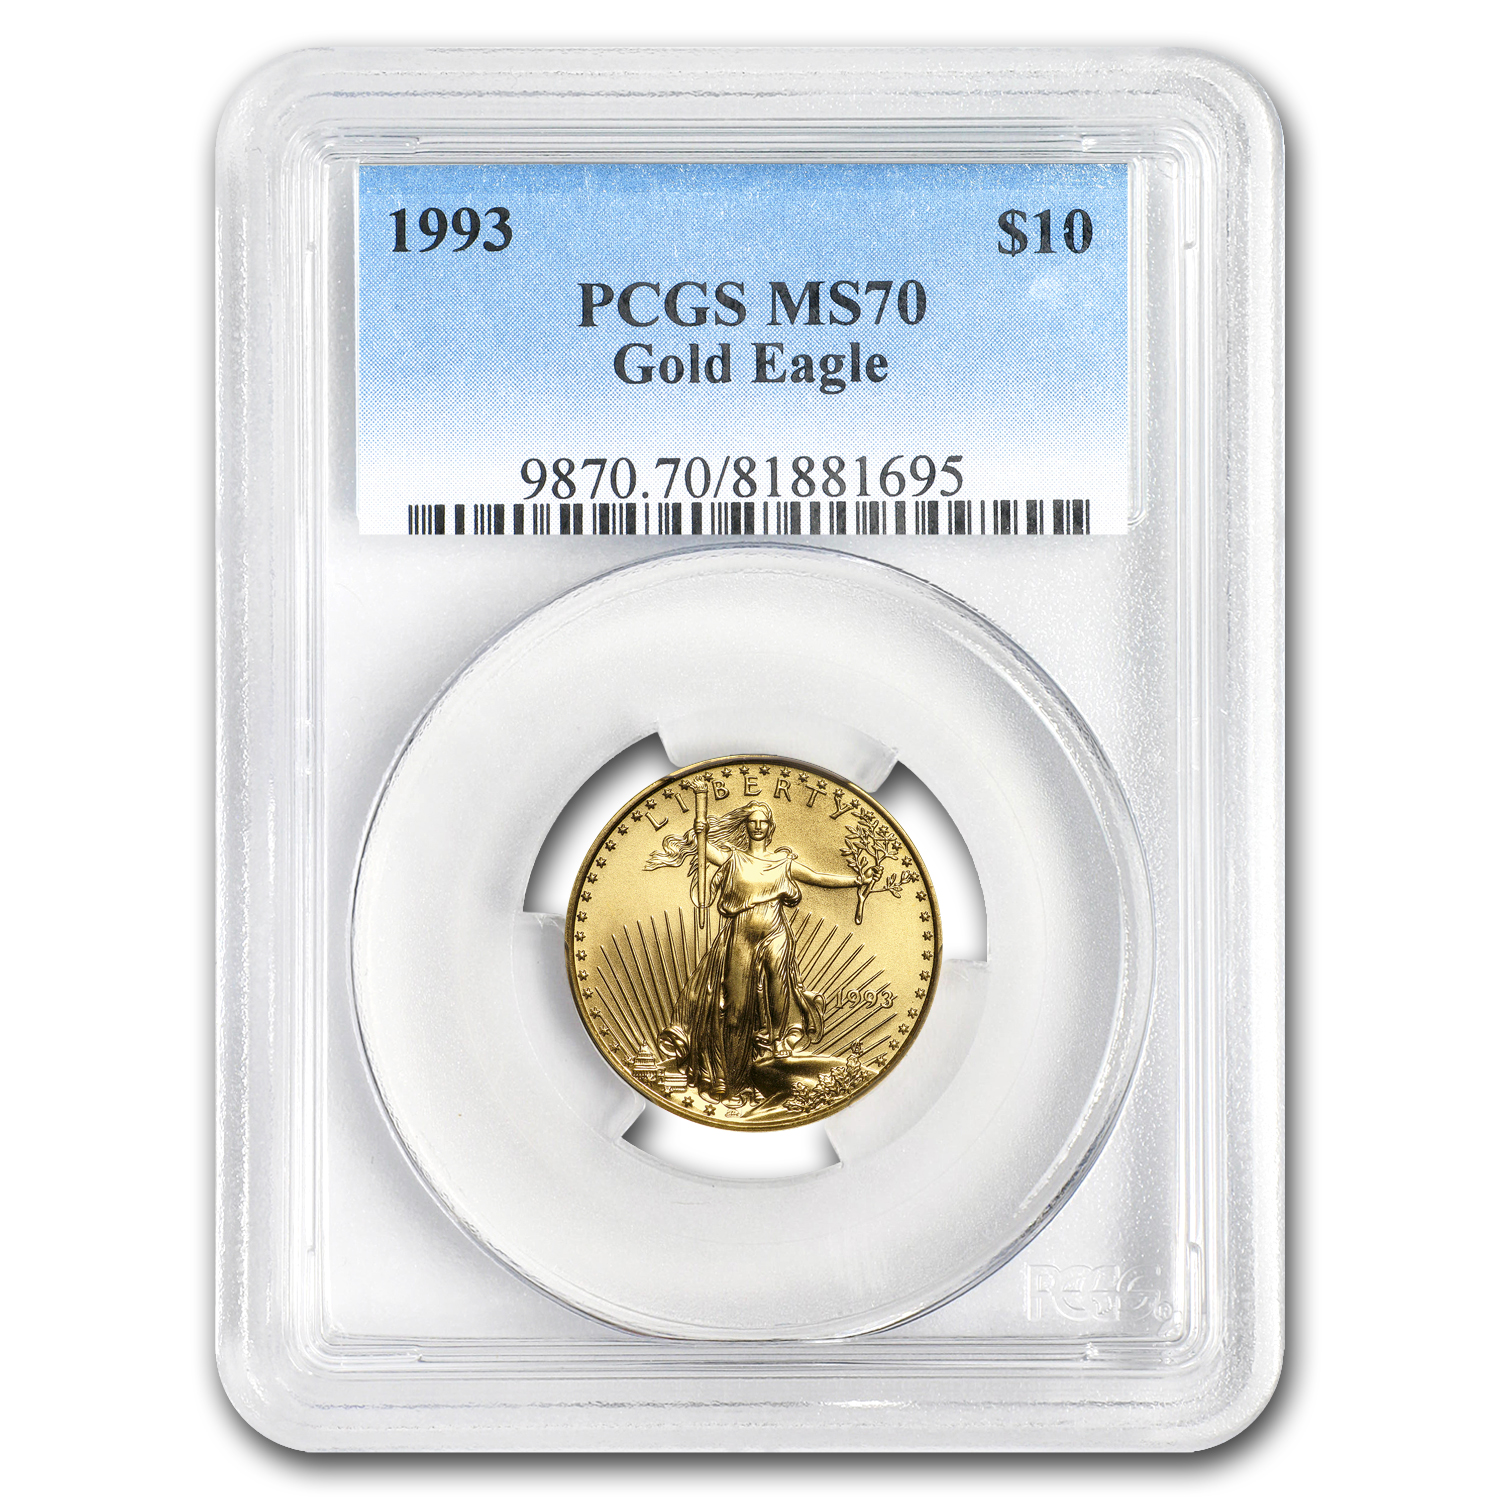 1993 1/4 oz Gold American Eagle MS-70 PCGS